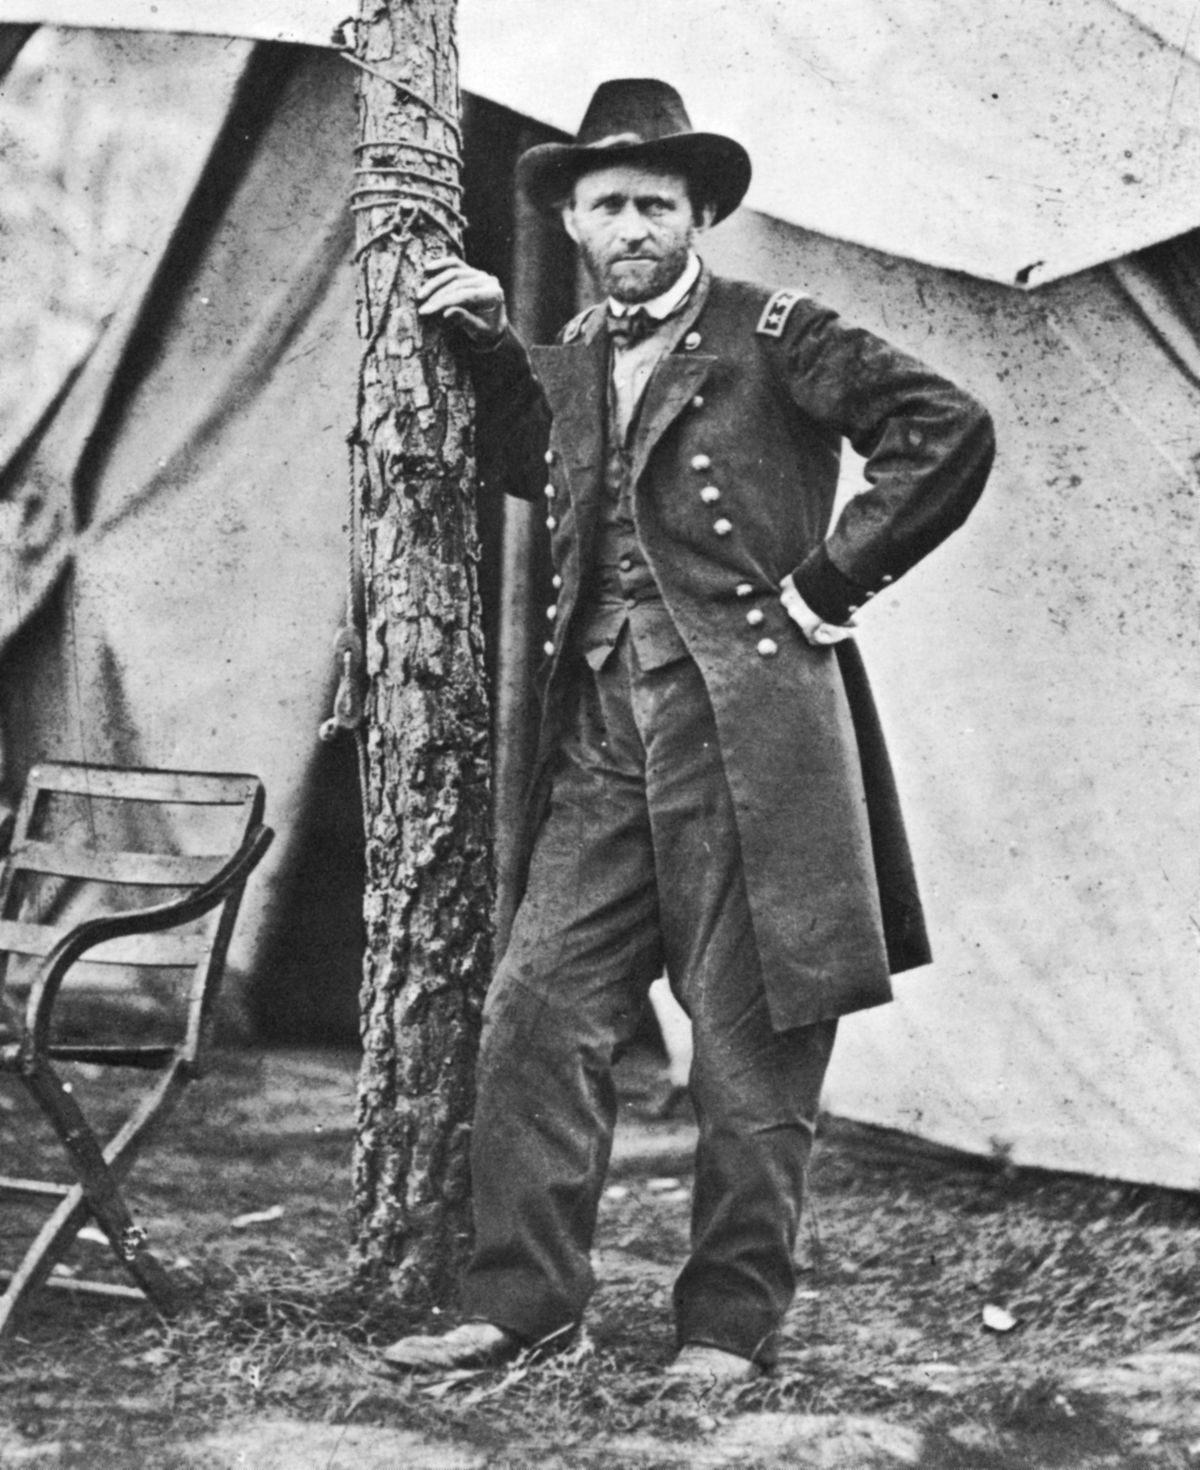 Ulysses Simpson Grant (1822-1885) born in Marion County, Ohio. In 1864 he became commanding general of the Federal (Northern) army during the American Civil War. Grant was elected as the 18th In the American Civil War President of the United States in...